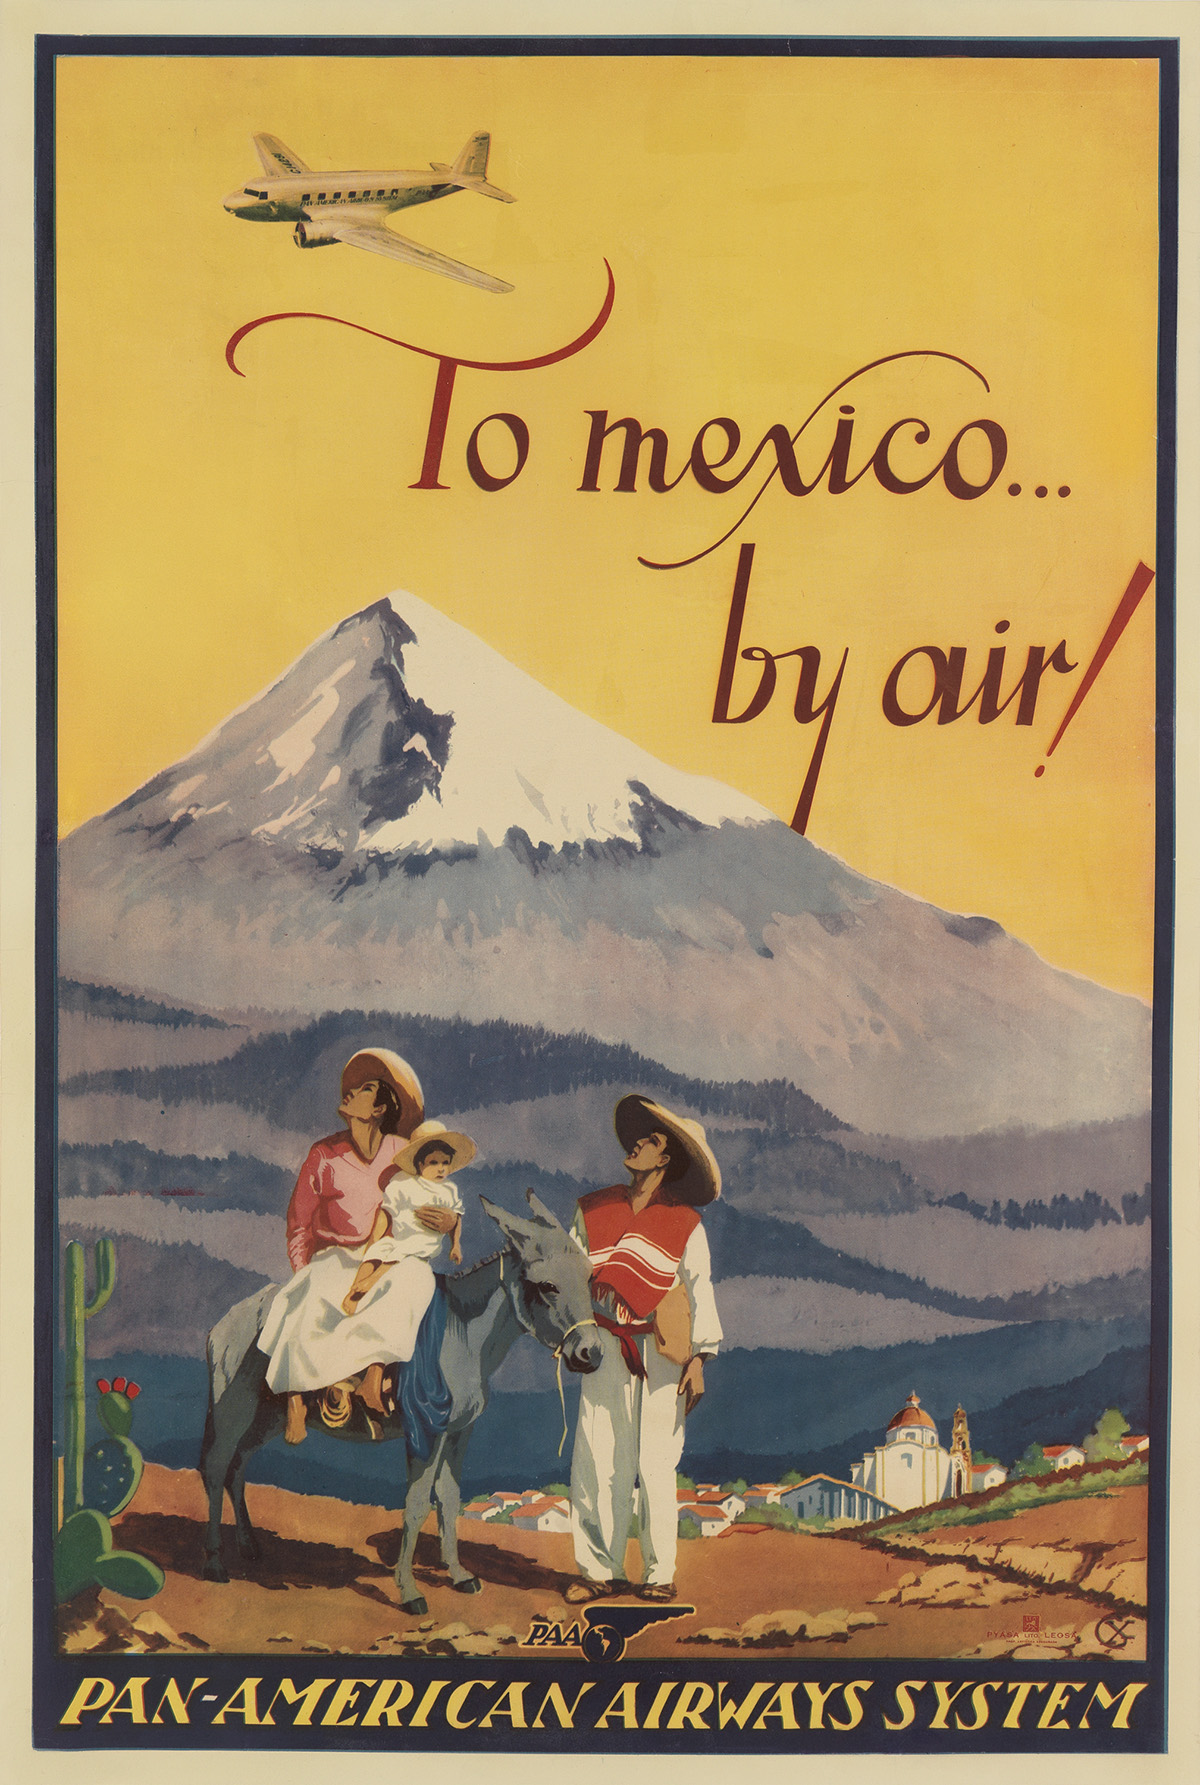 MONOGRAM-UNKNOWN-TO-MEXICO----BY-AIR--PAN---AMERICAN-AIRWAYS